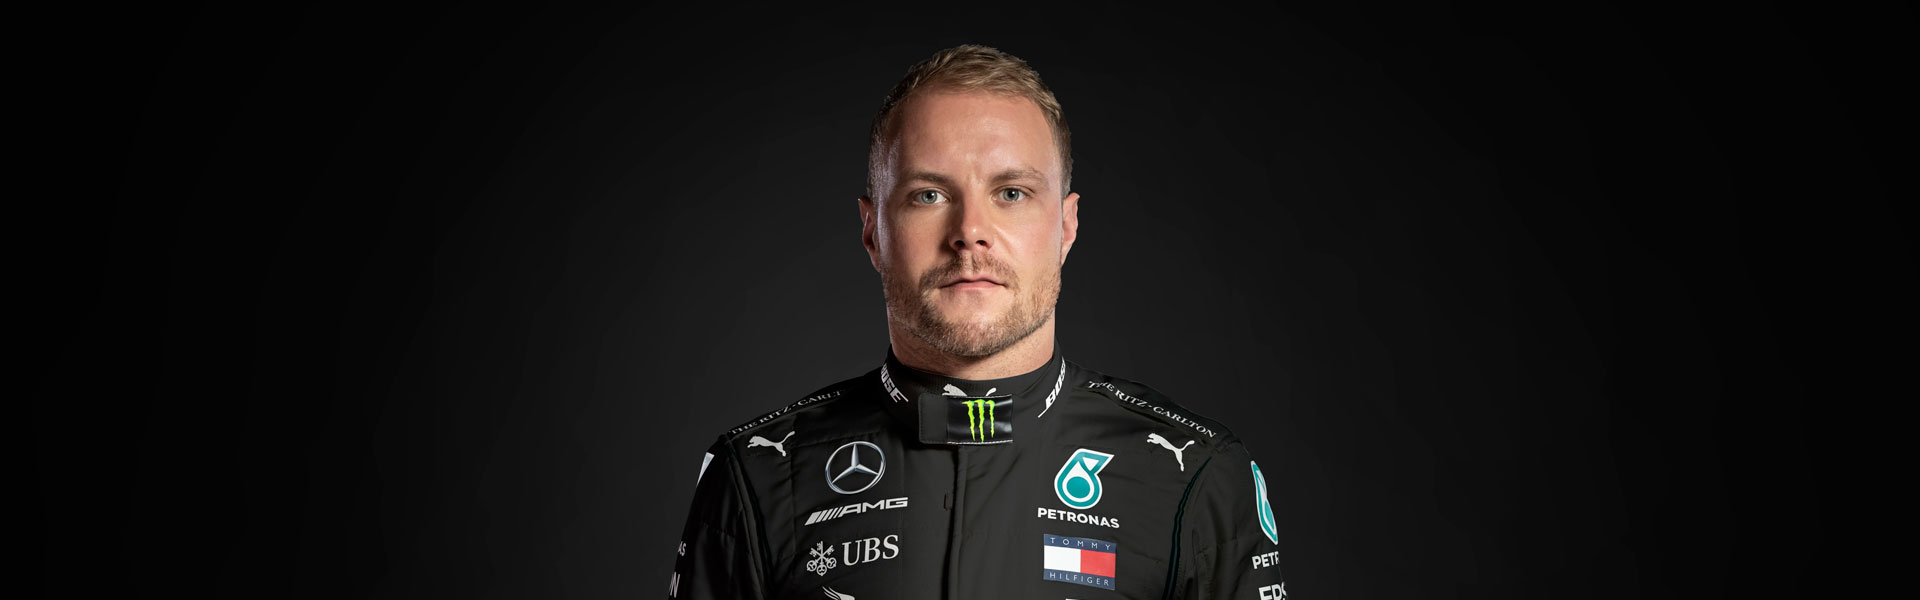 BREAKING: Valtteri Bottas will leave Mercedes at the end of 2021